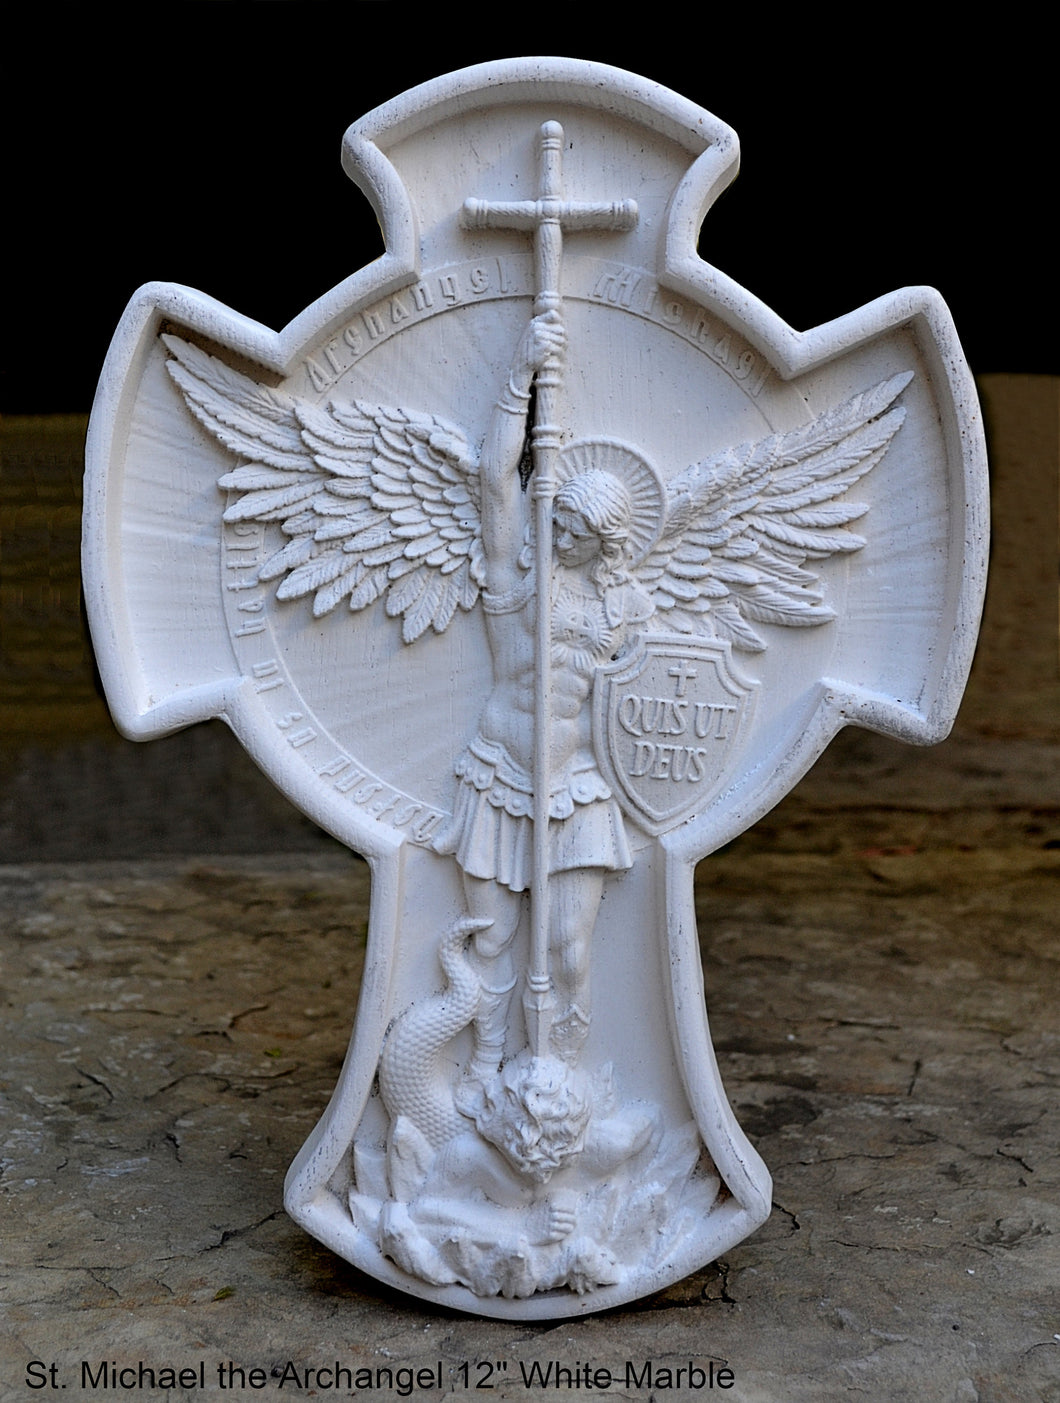 "Historical religious Mythological St. Michael the Archangel wall angel 12"" sculpture plaque Sculpture www.Neo-mfg.com"